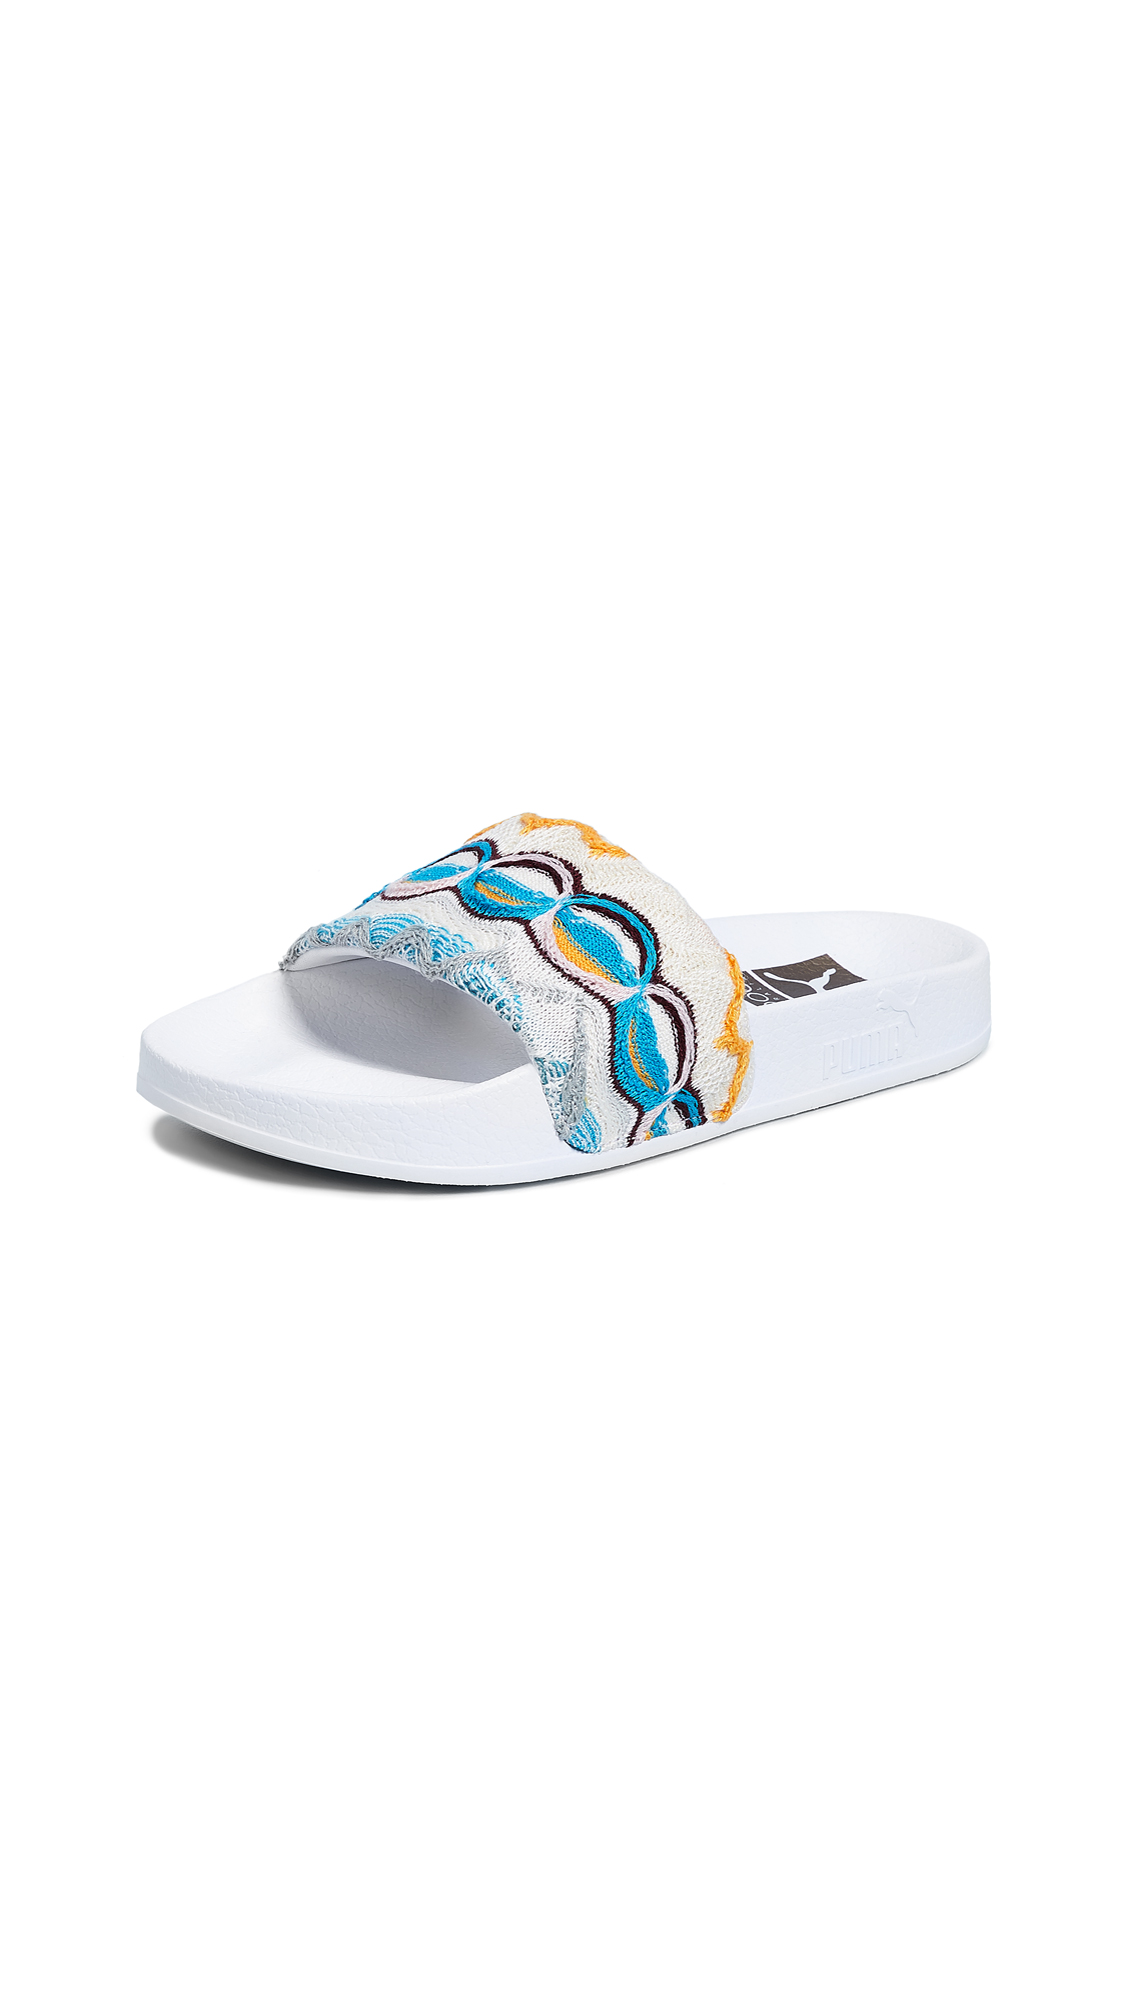 PUMA Leadcat Coogie Multi Slides